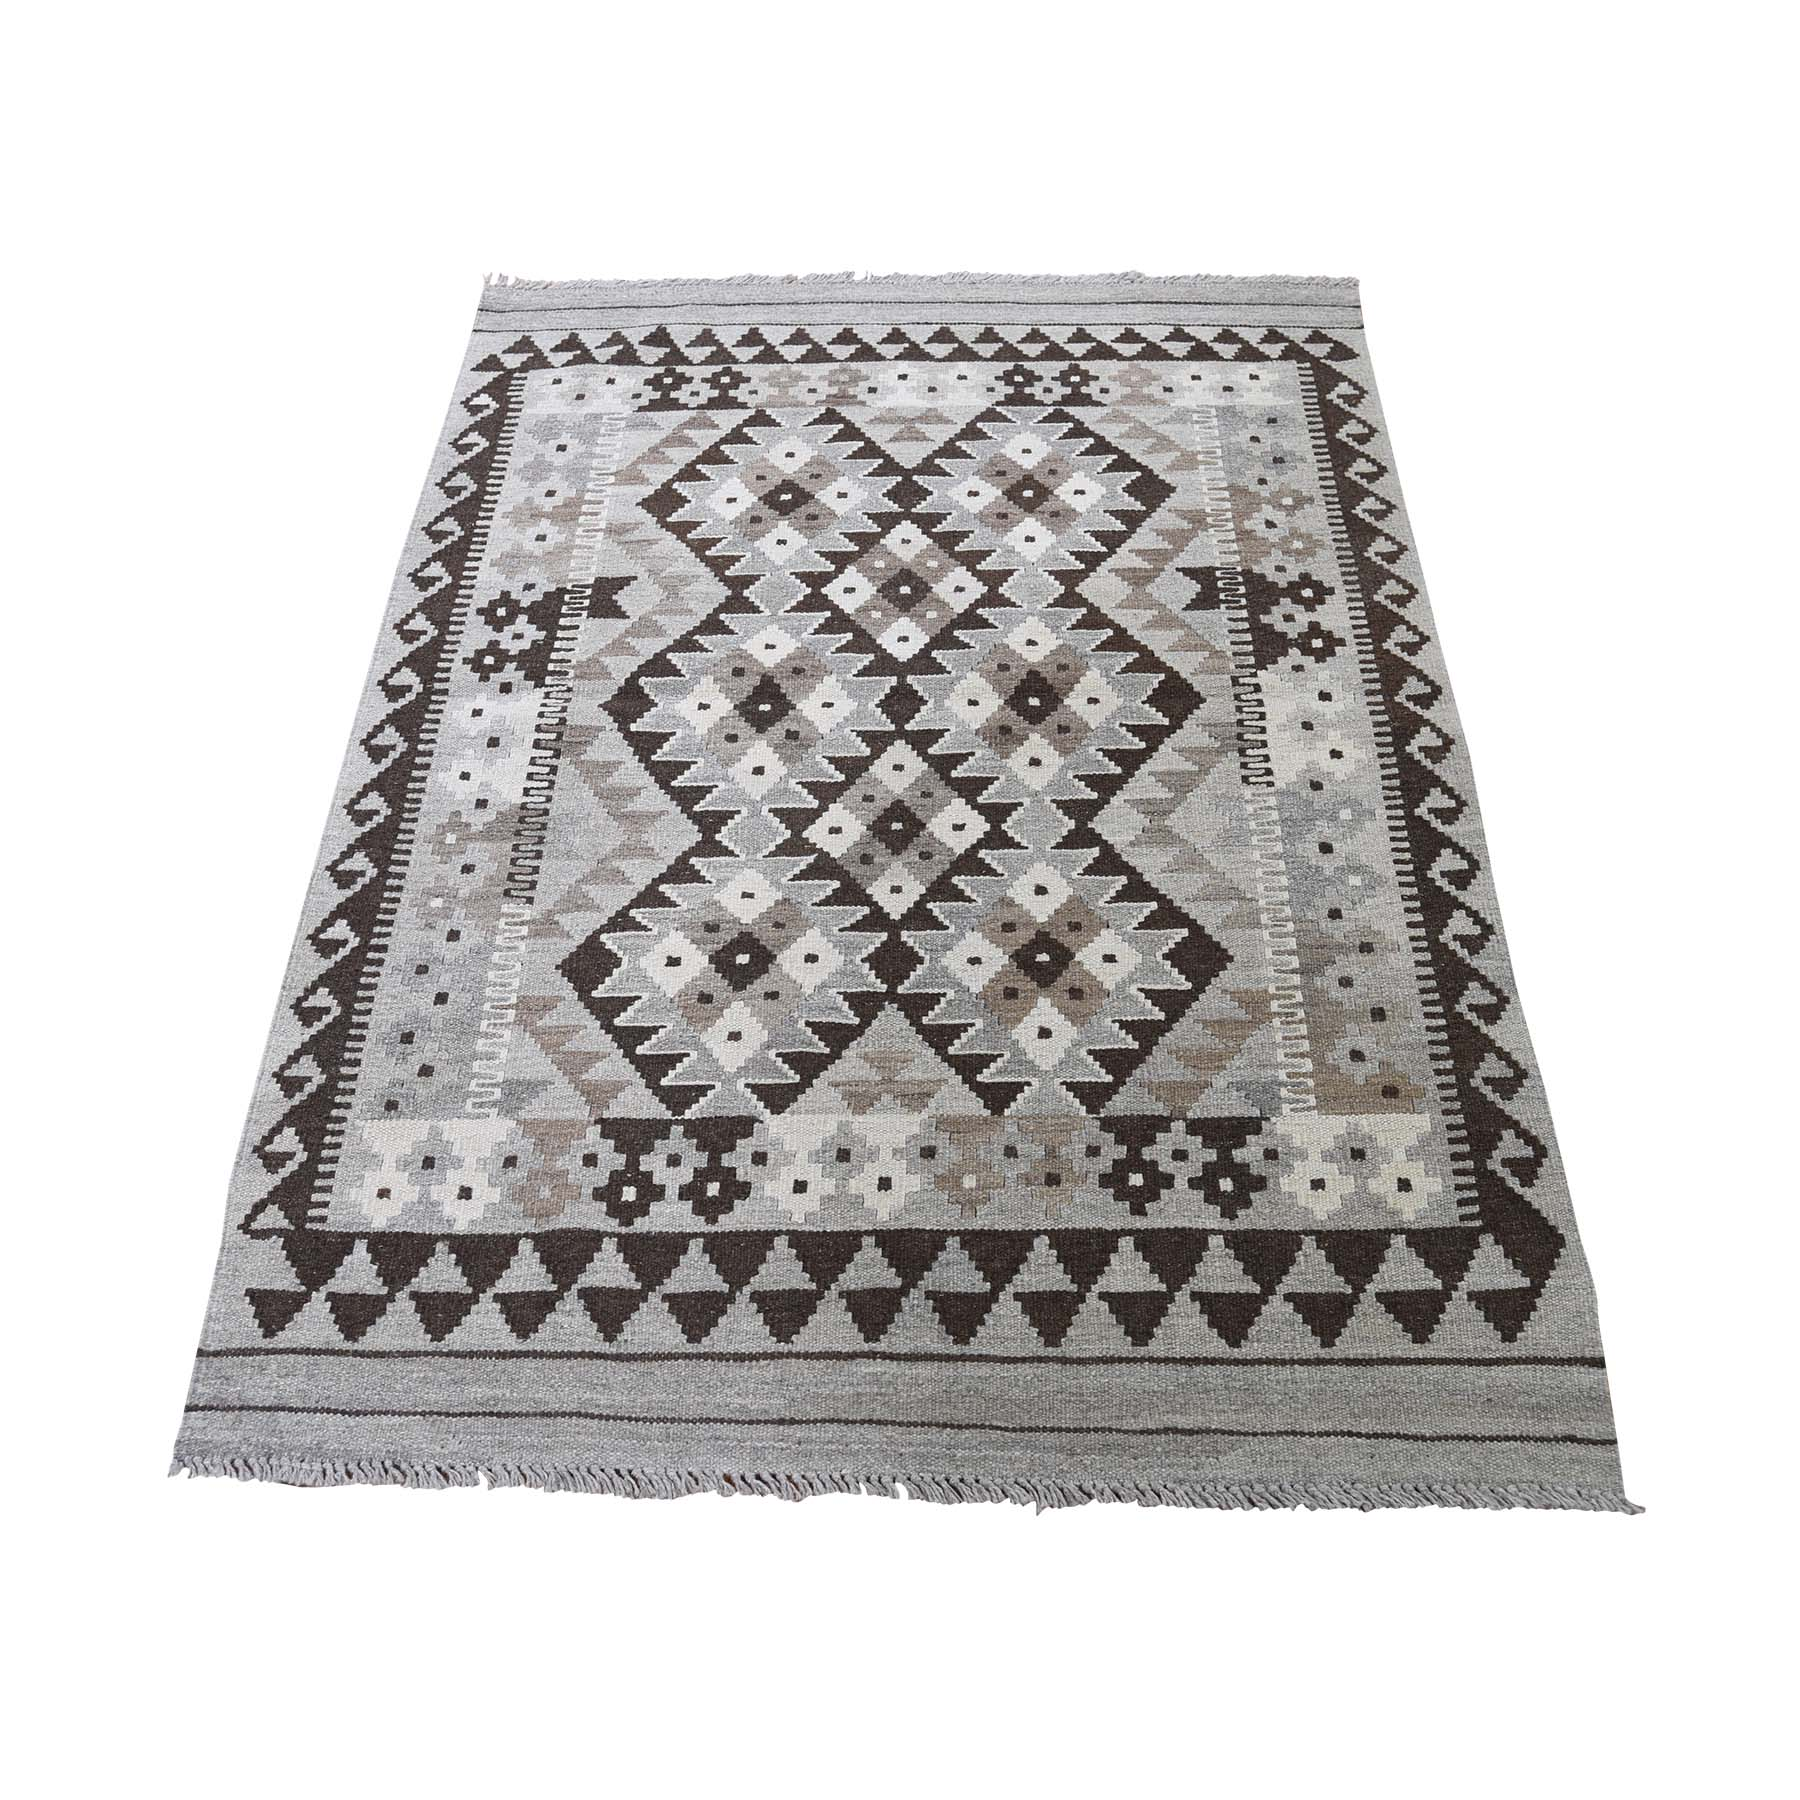 "3'1""X4'10"" Afghan Kilim Reversible Undyed Natural Wool Hand Woven Oriental Rug moadc8ab"